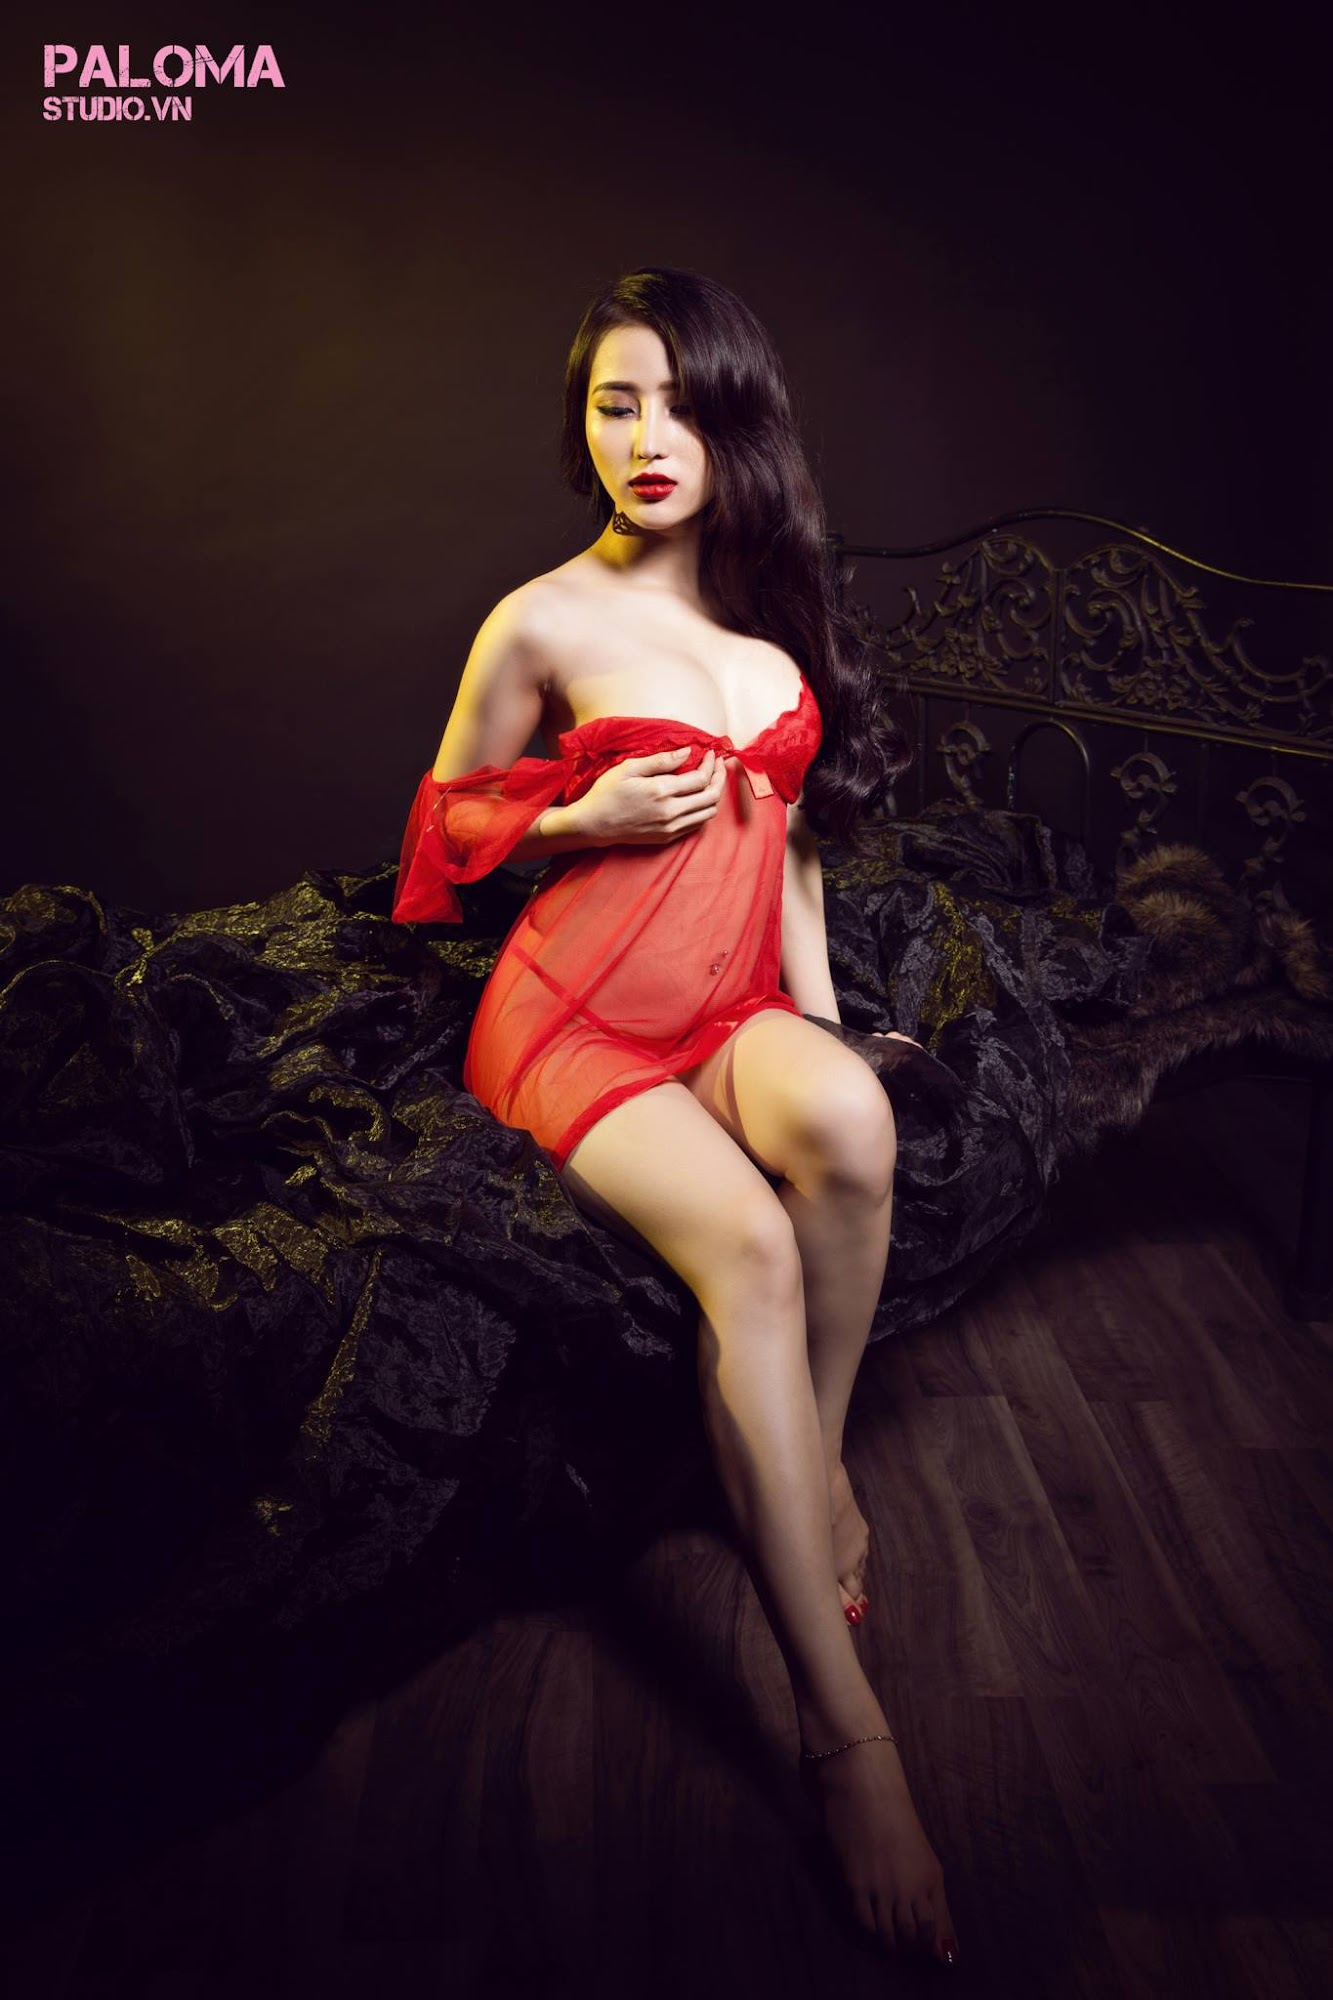 Archived: Hoang Thi Phu – VietNam Sexy Model